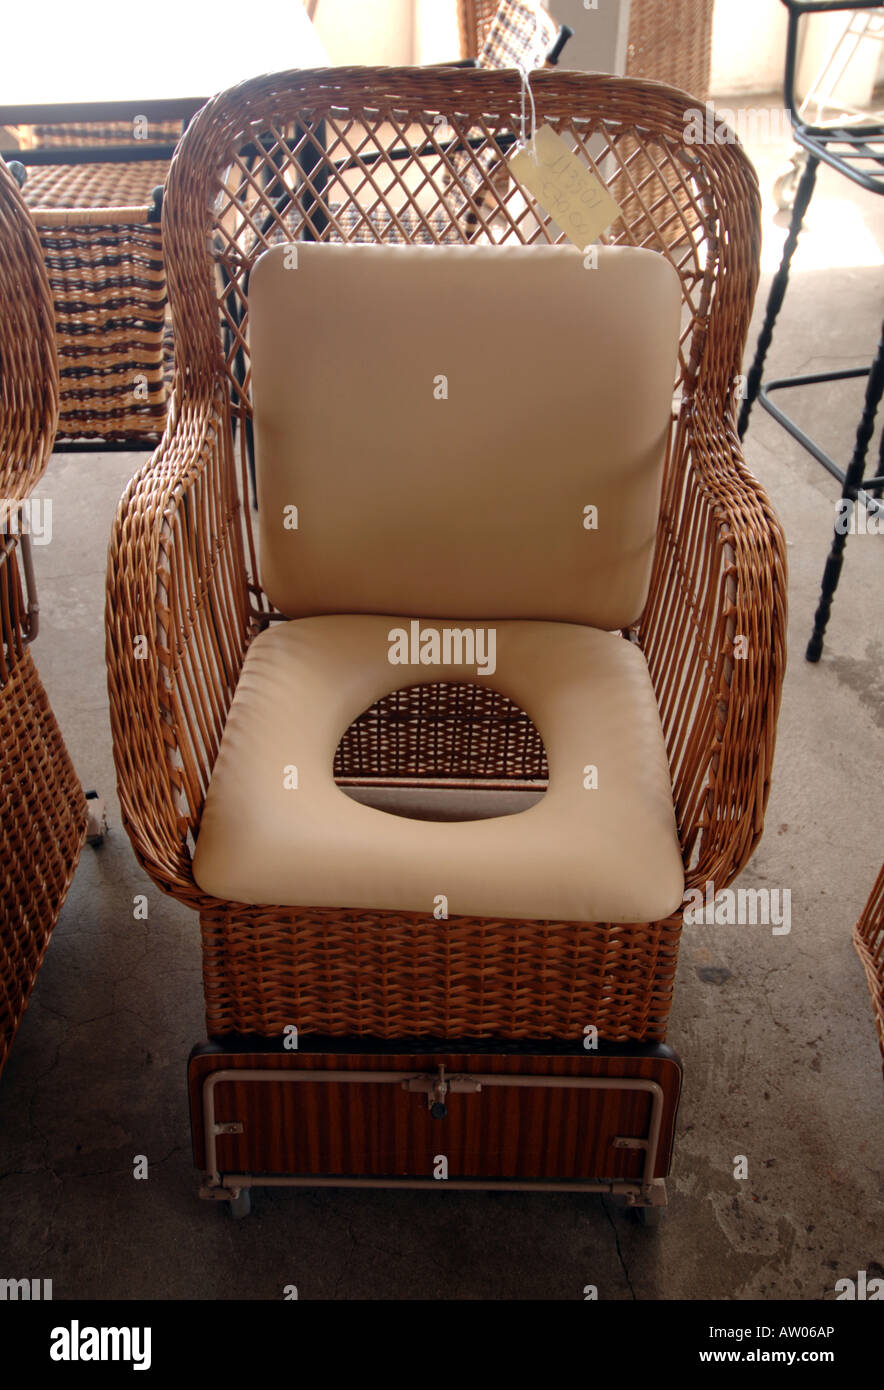 wicker chair commode toilet lavatory